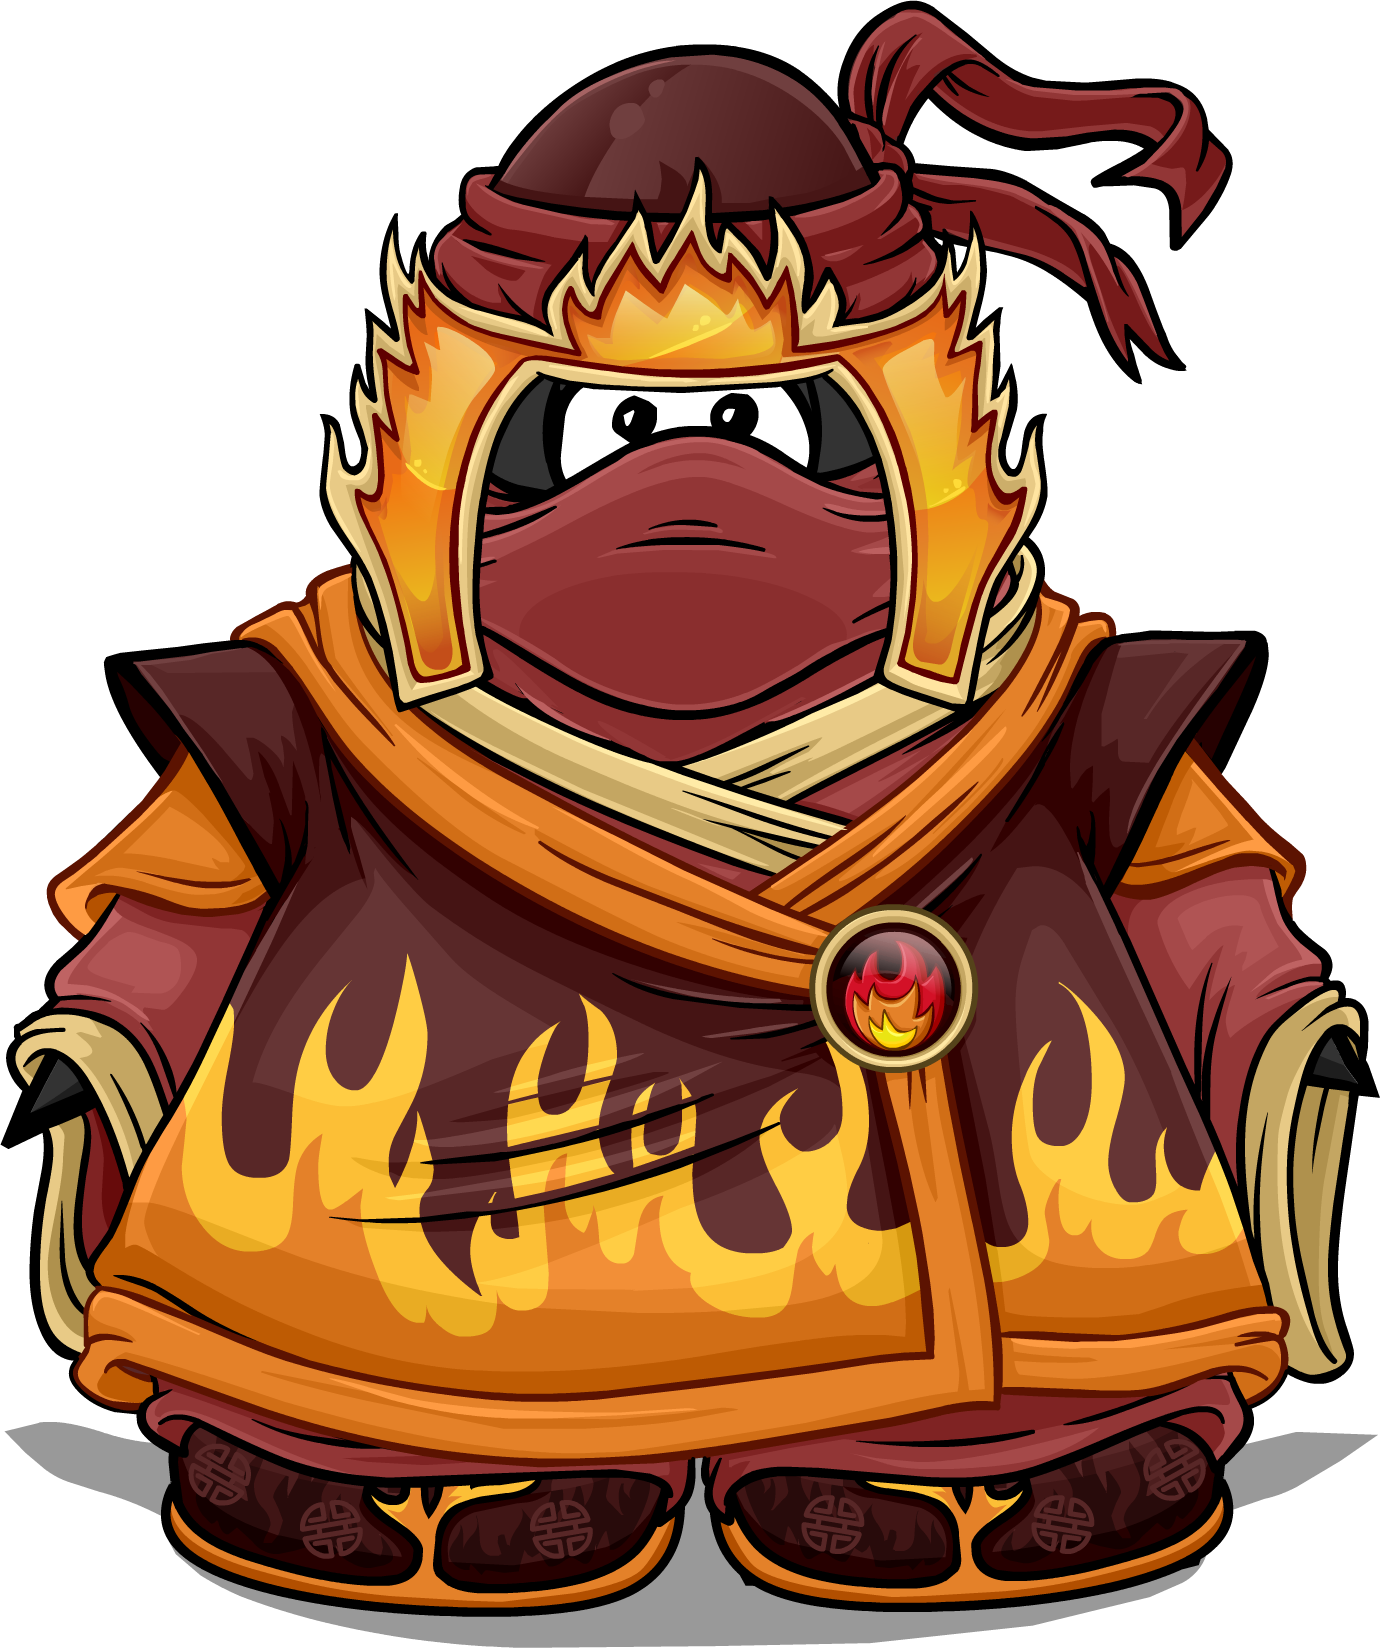 Club clipart card suit. Fire penguin wiki fandom